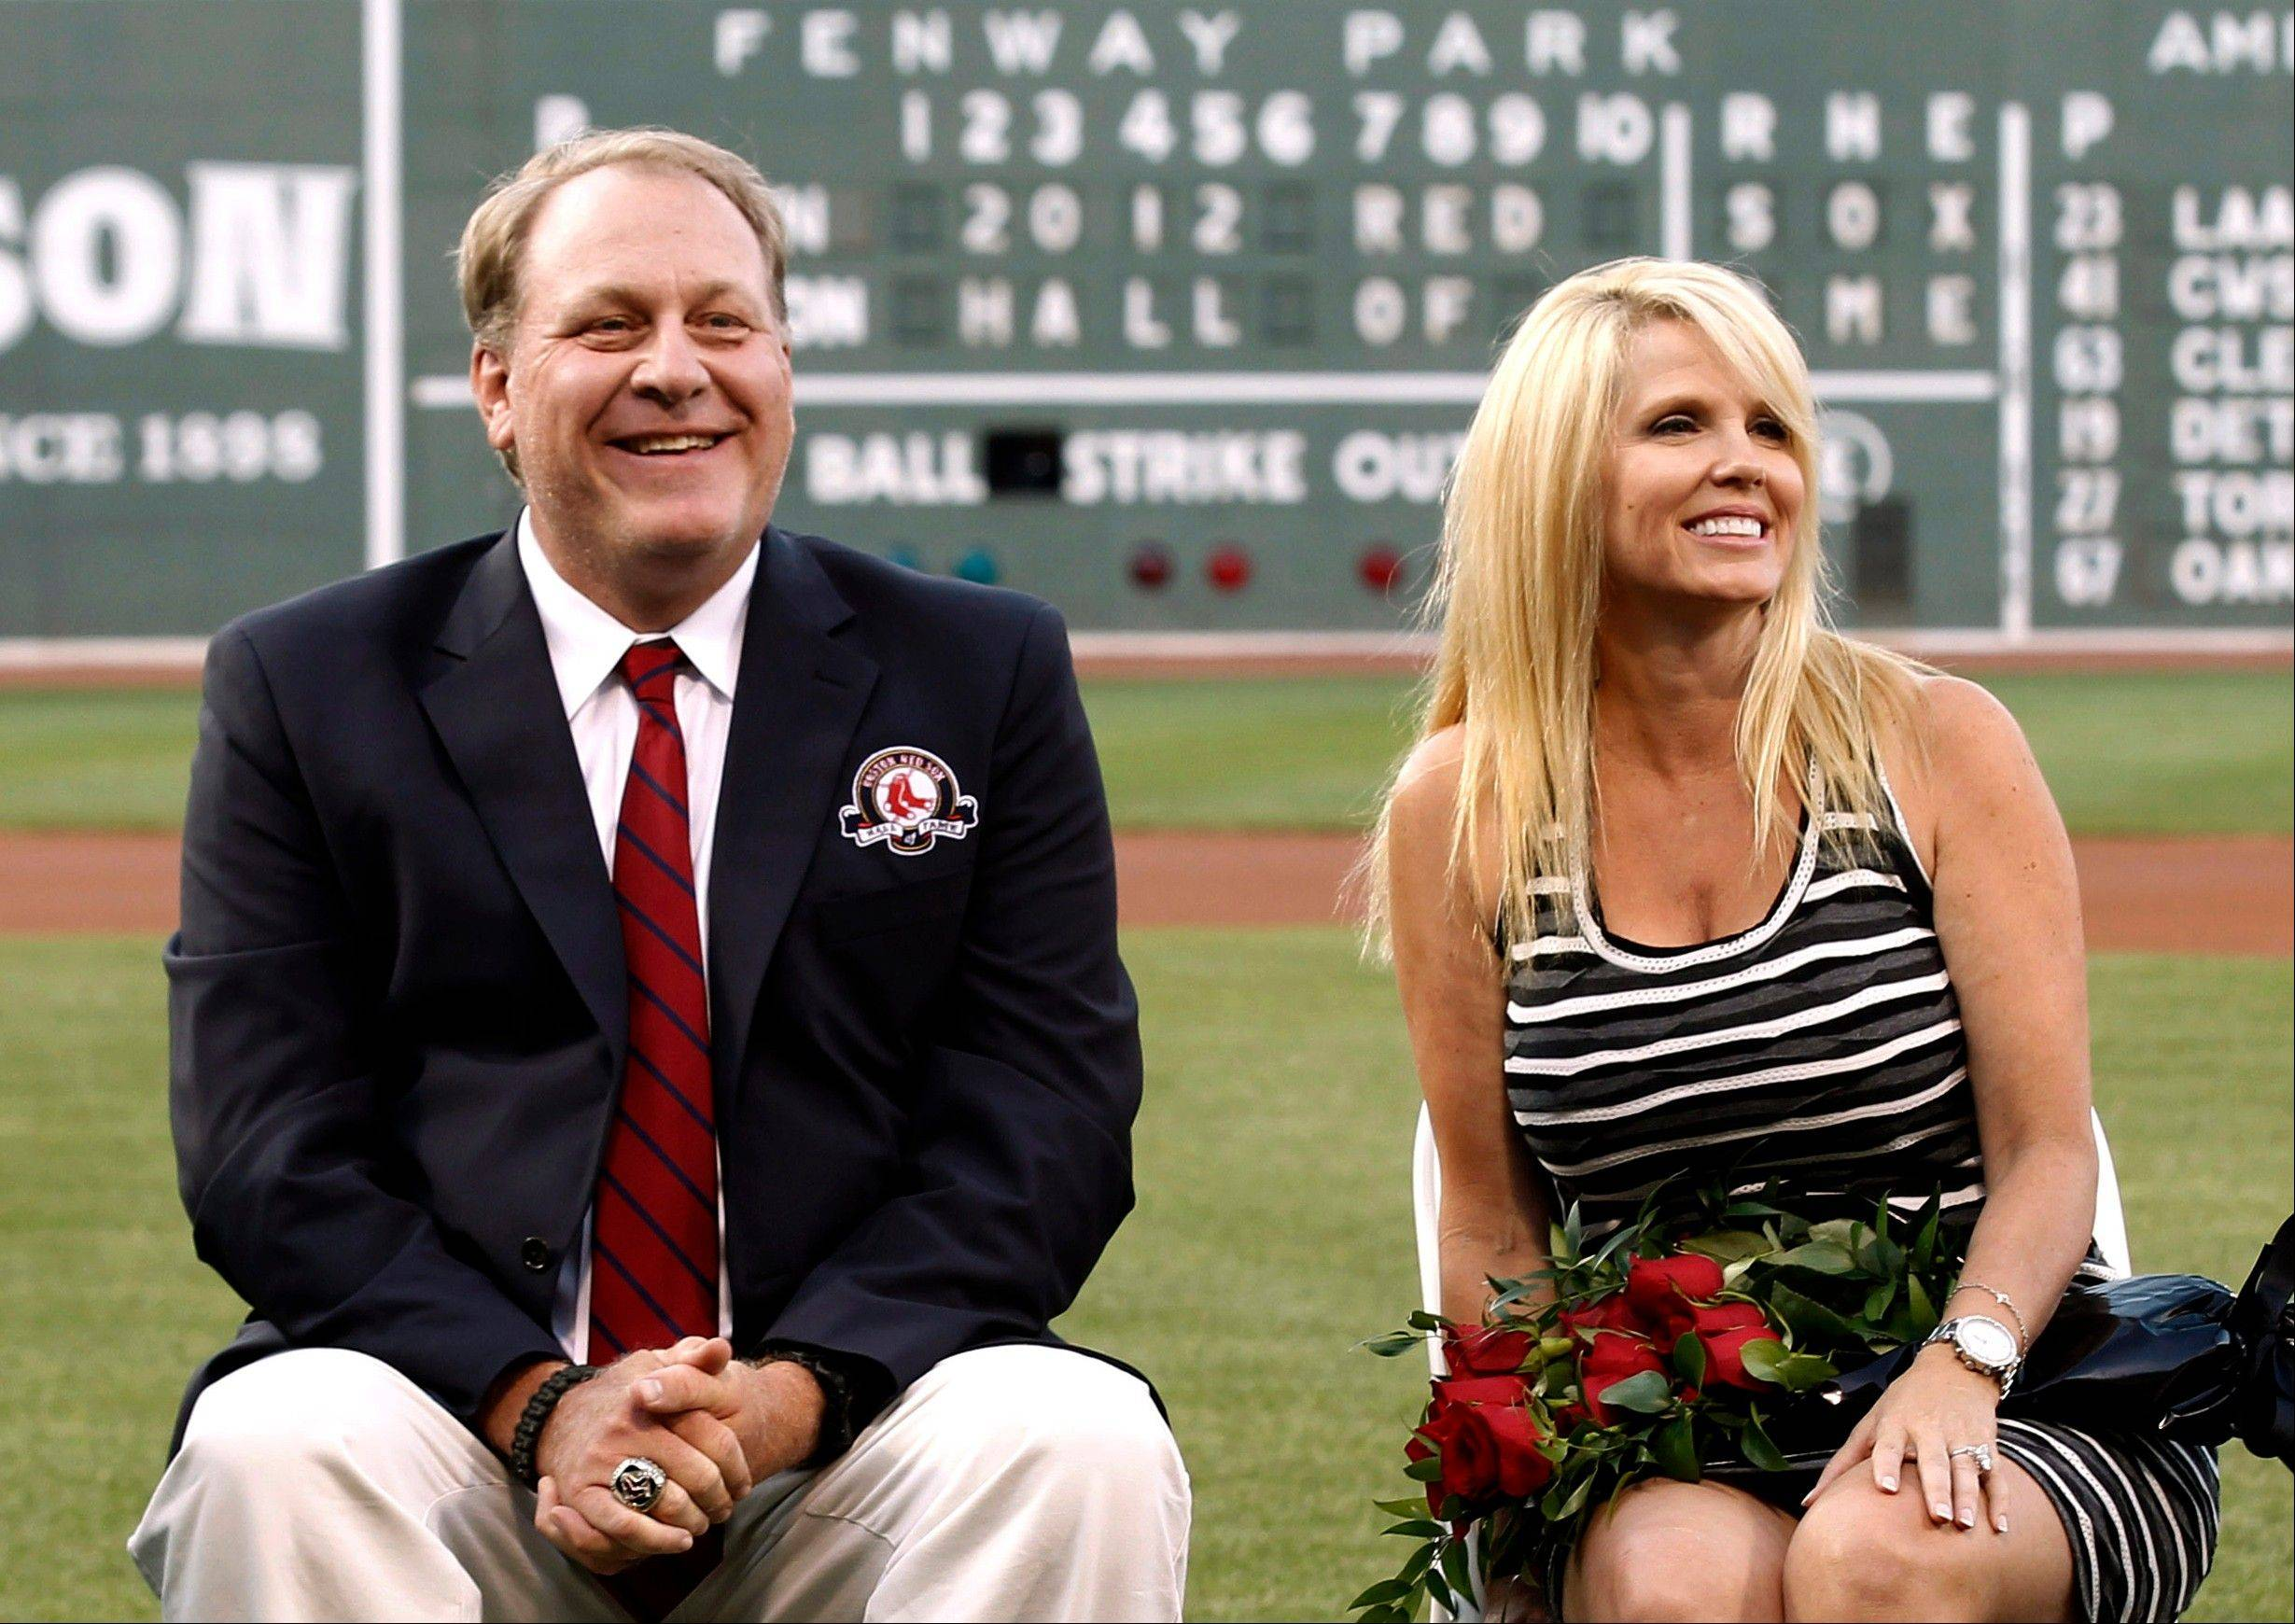 Red sox pitcher s wife nude photos